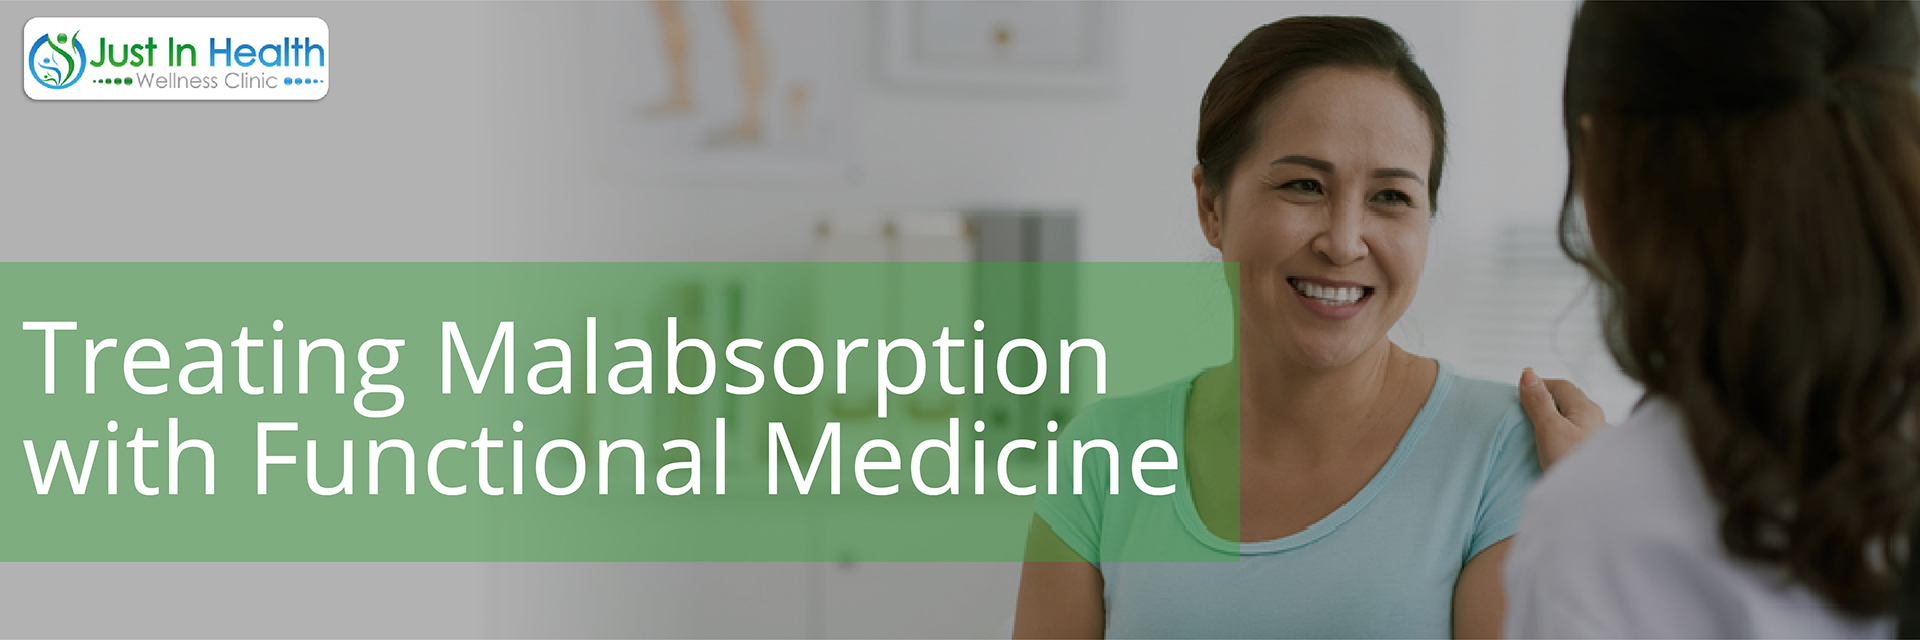 How to treat malabsorption with natural medicine